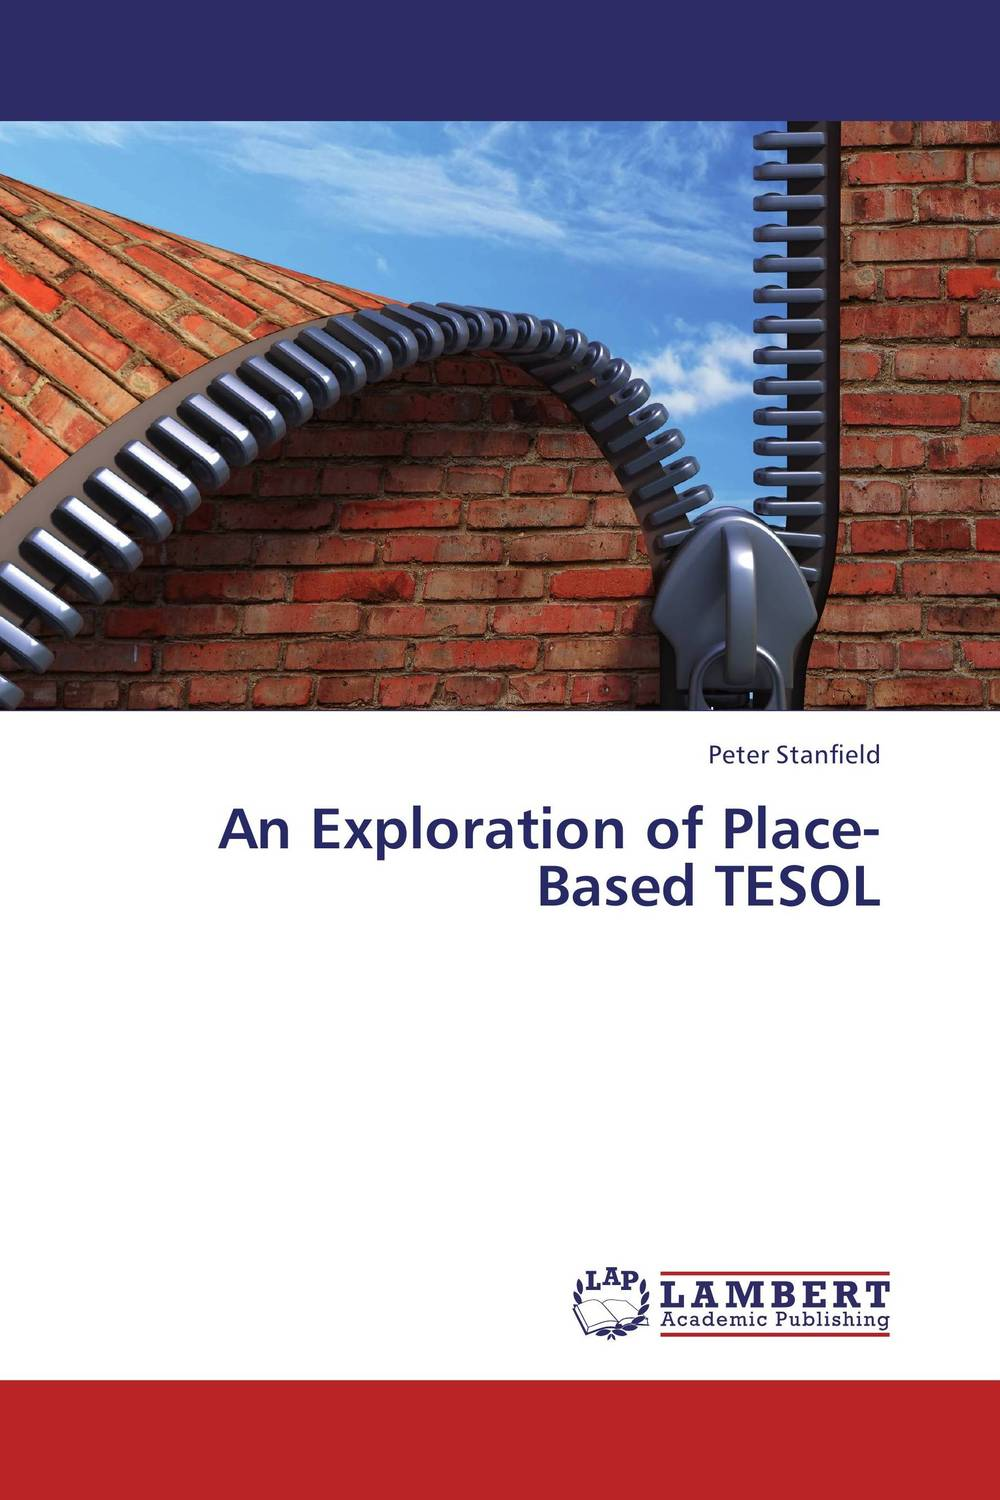 An Exploration of Place-Based TESOL the role of absurdity within english humour